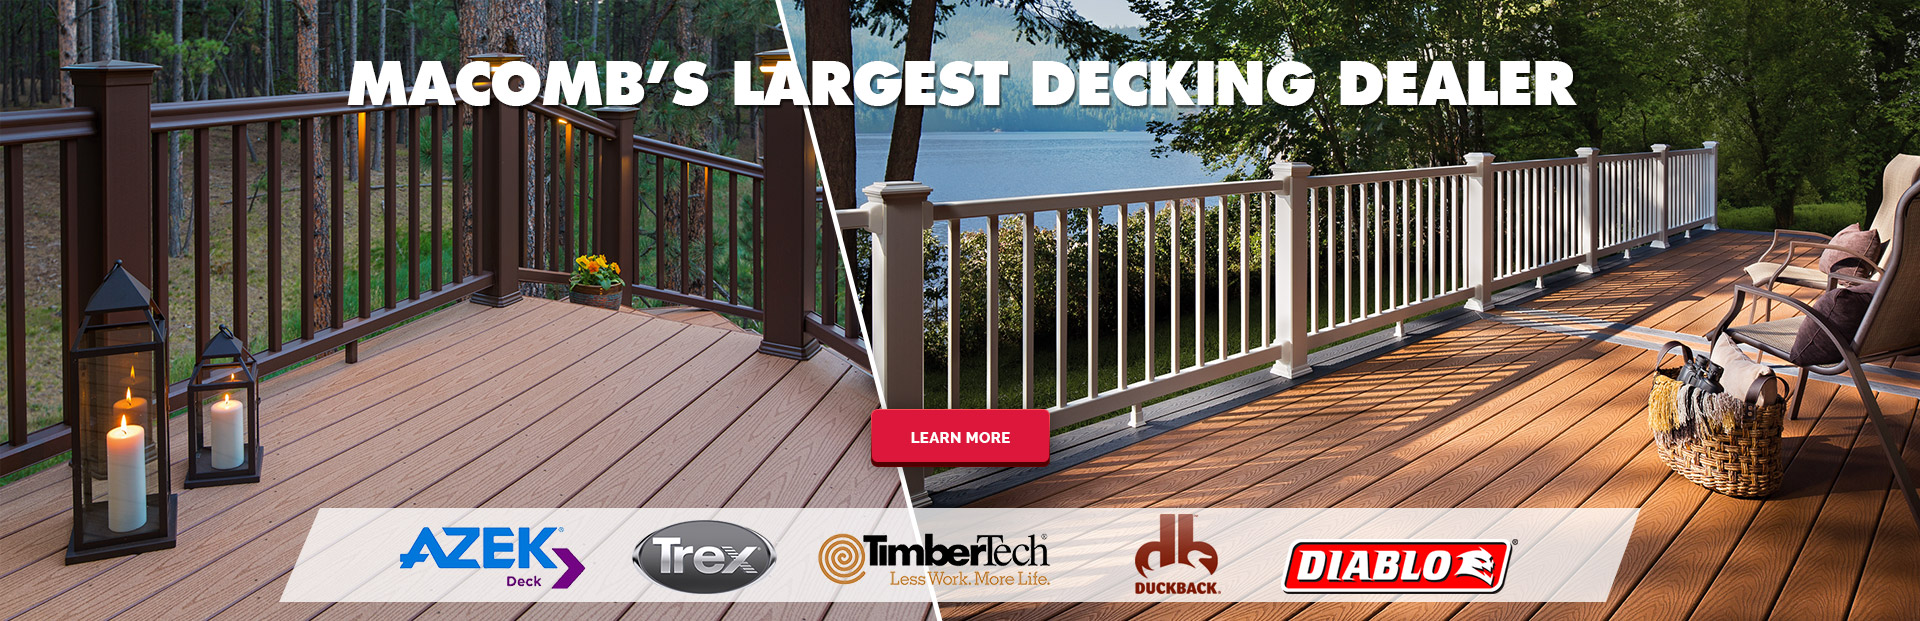 #1 decking dealer in Macomb County